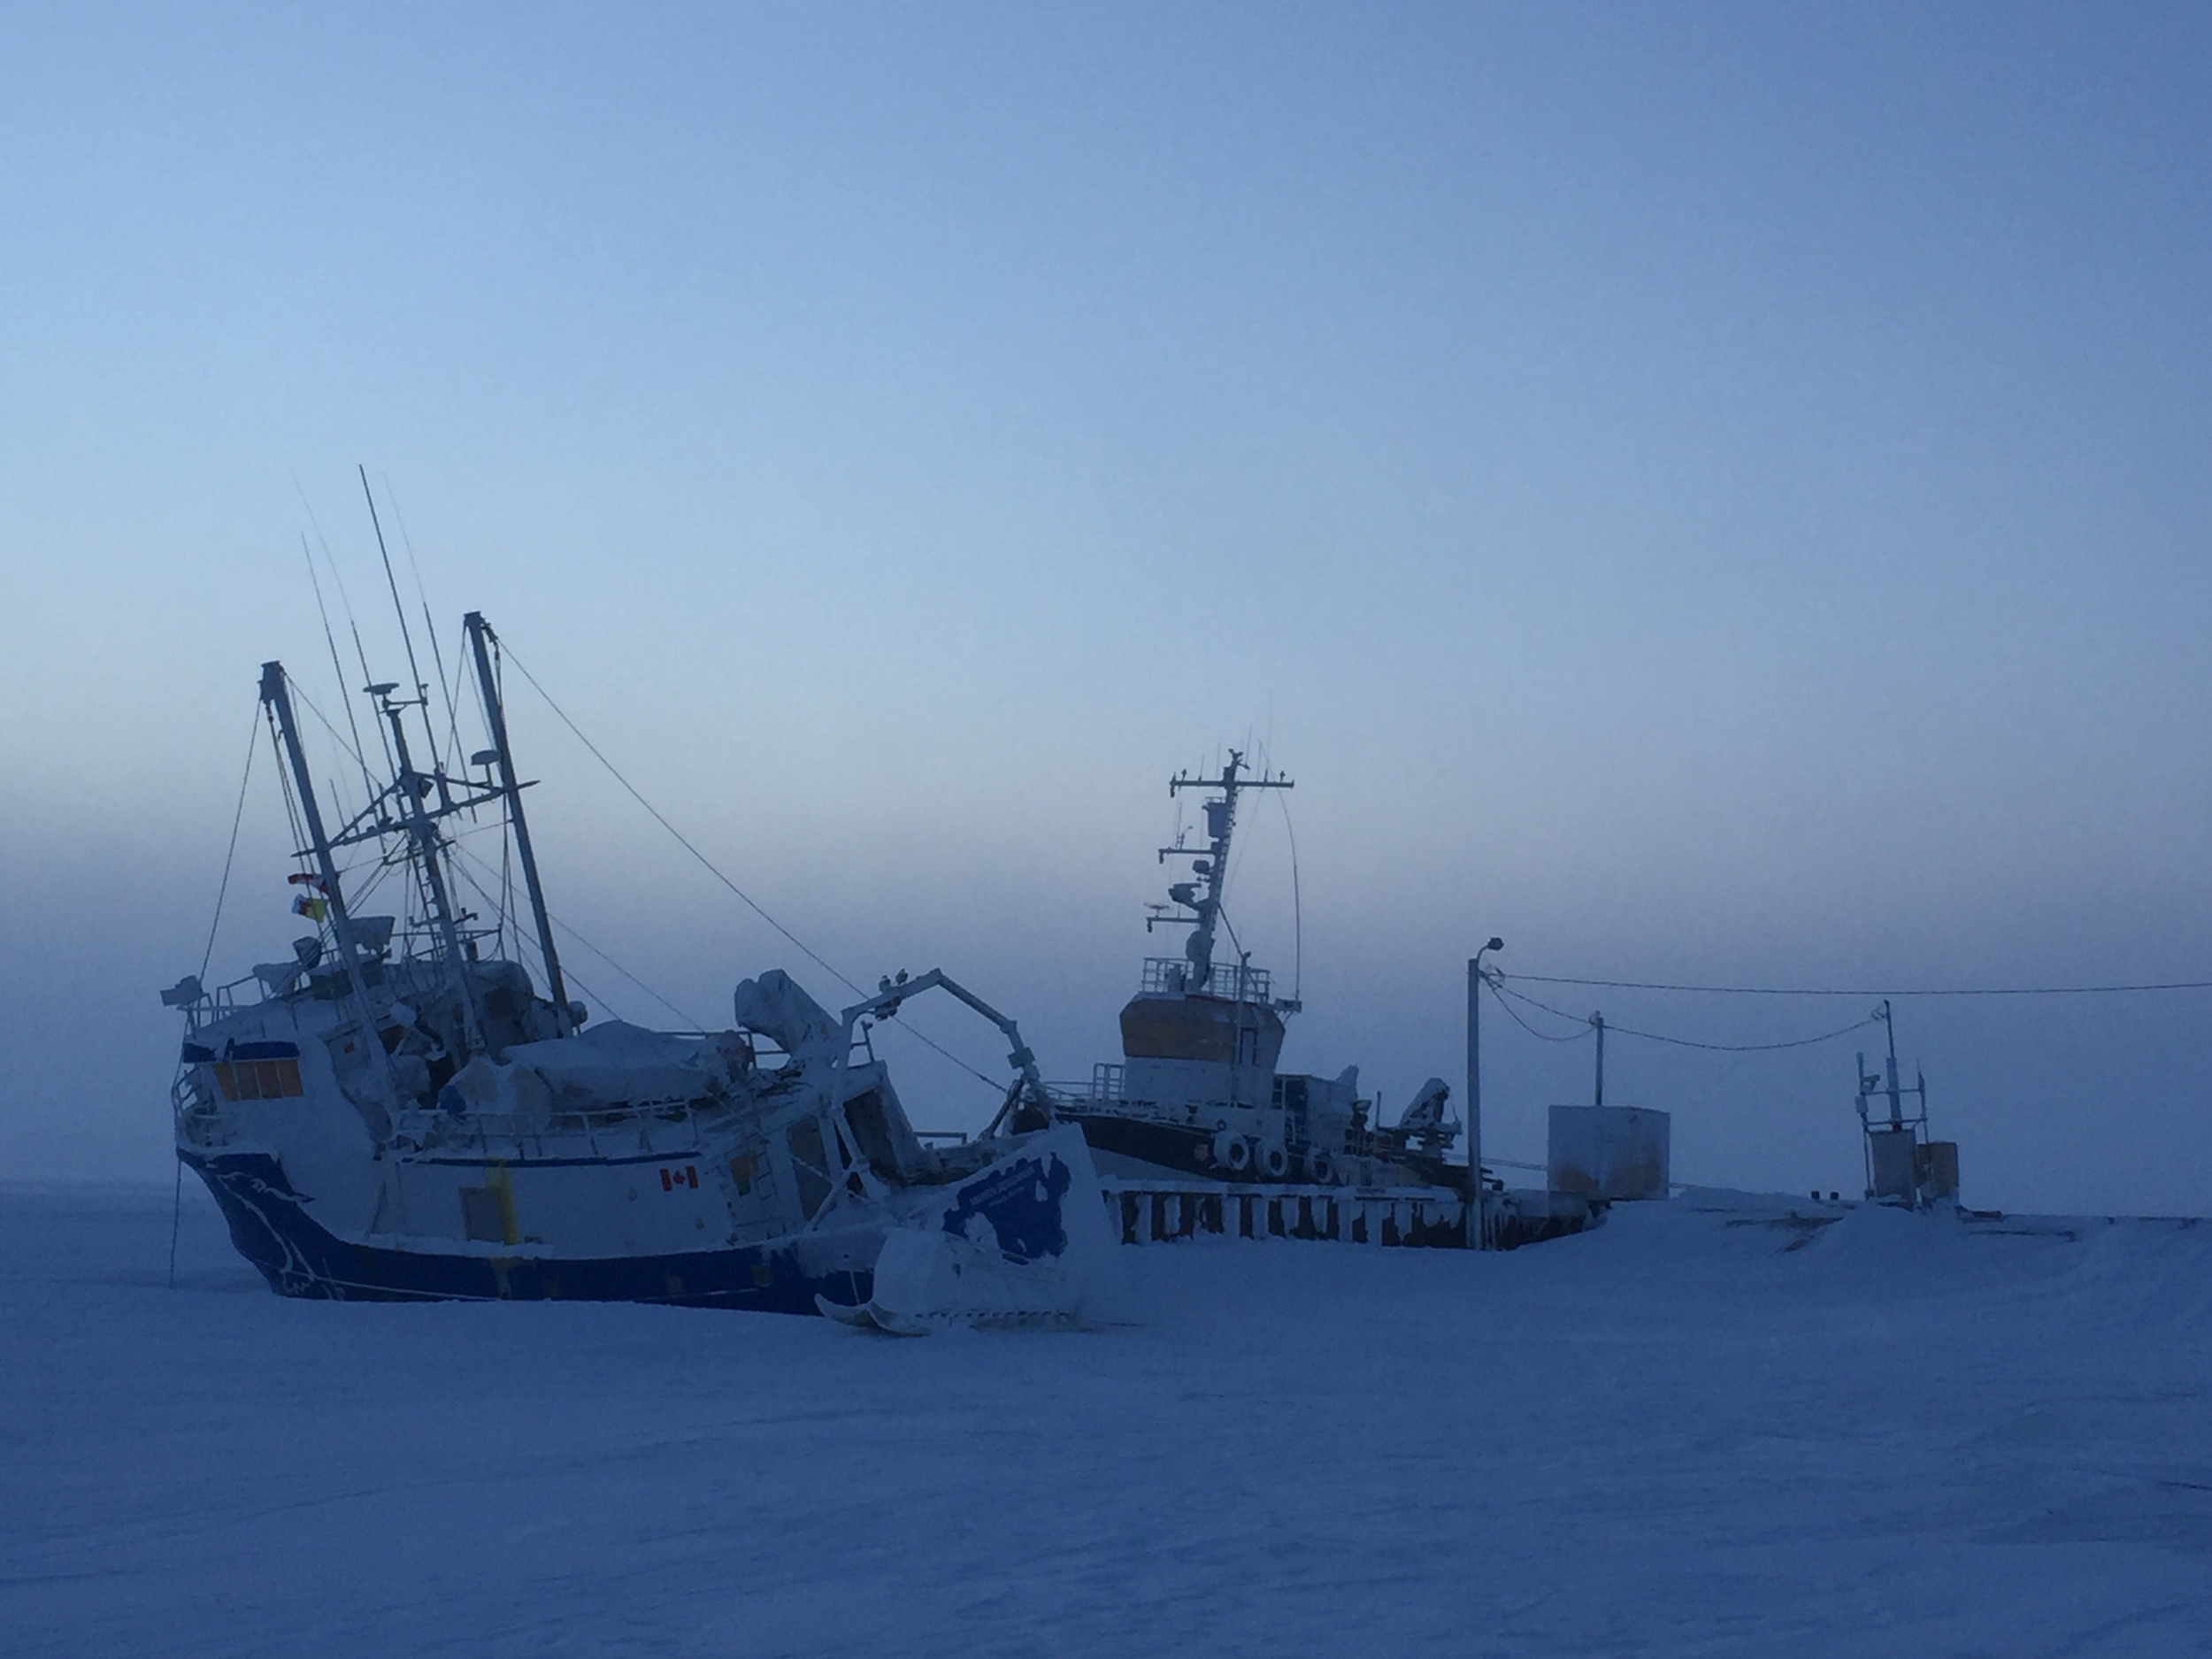 It got chilly in Cambridge Bay